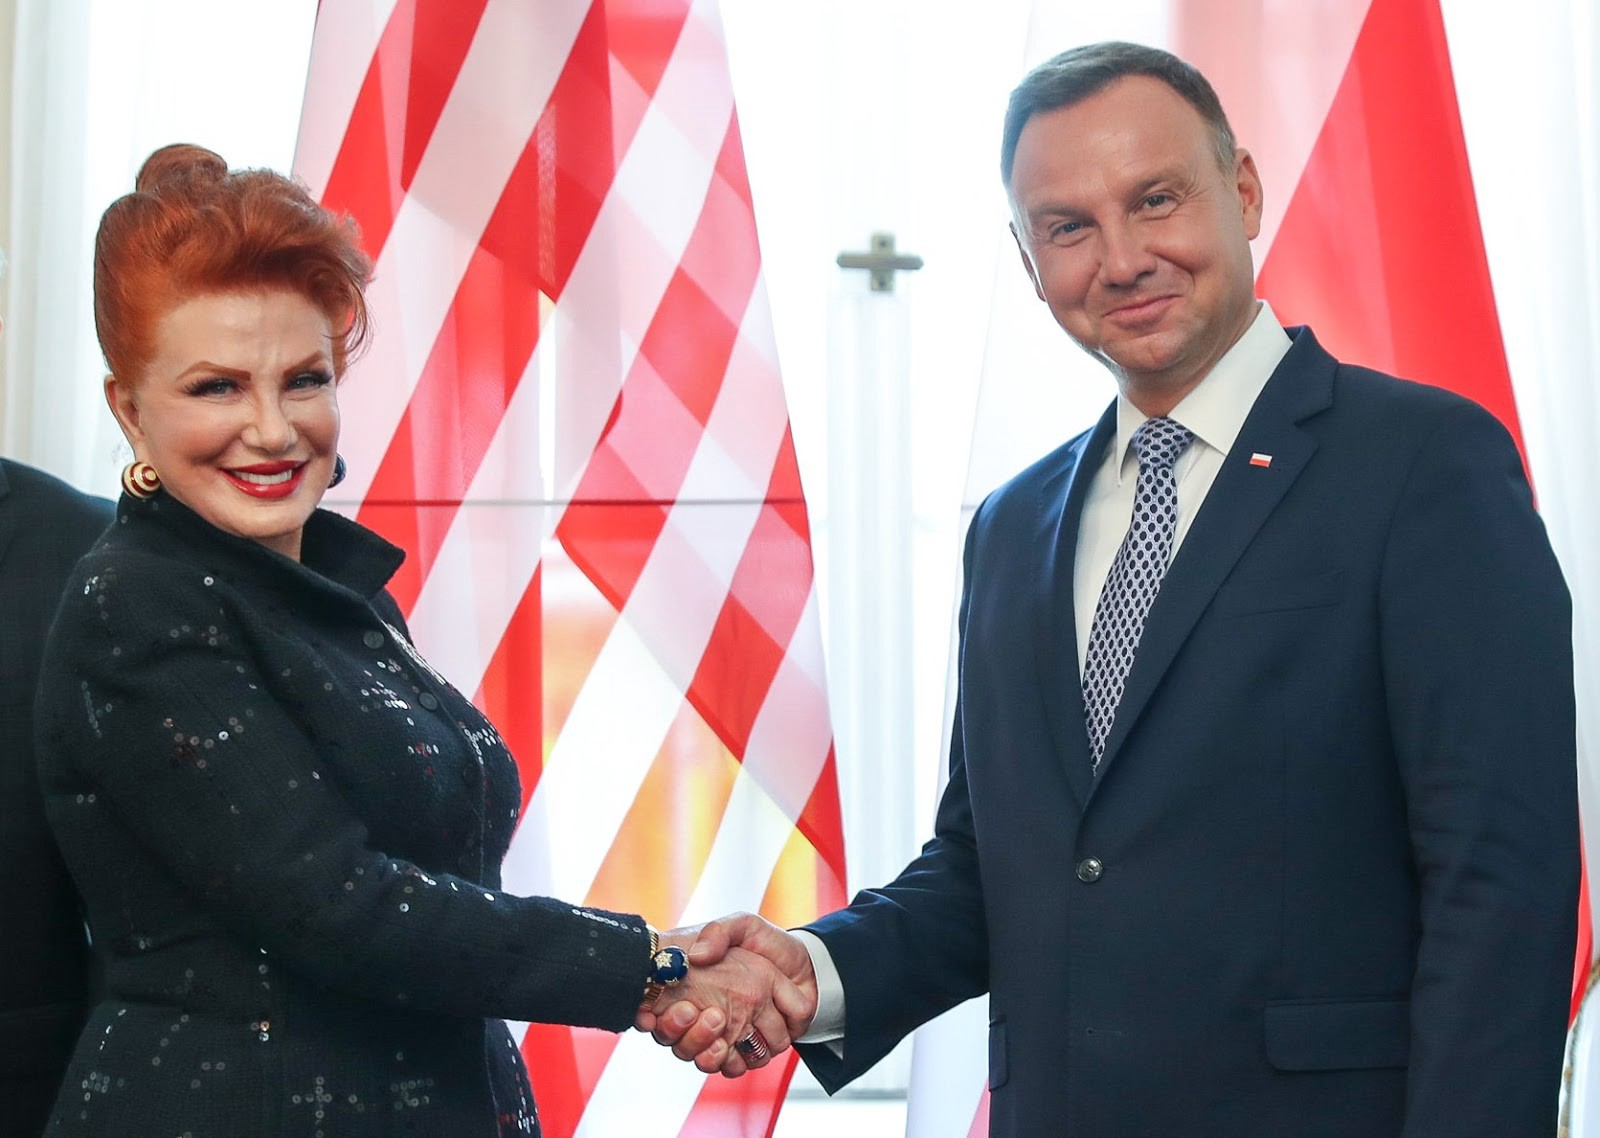 U.S. Ambassador to Poland Georgette Mosbacher greets Polish President Andrzej Duda during her credentialing ceremony in early September 2018.